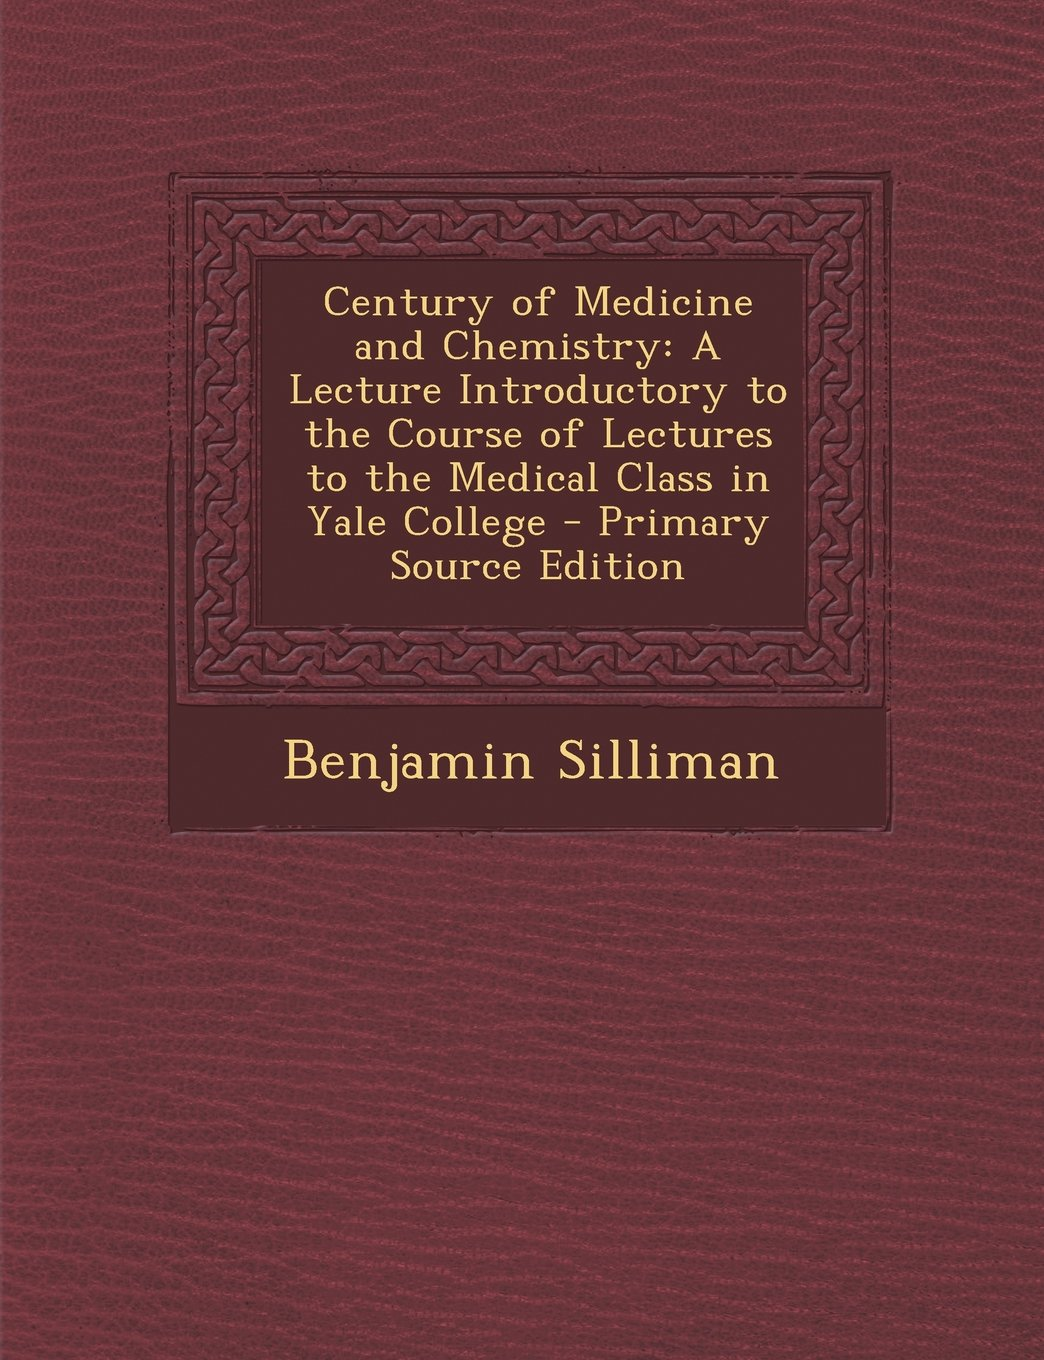 Download Century of Medicine and Chemistry: A Lecture Introductory to the Course of Lectures to the Medical Class in Yale College - Primary Source Edition pdf